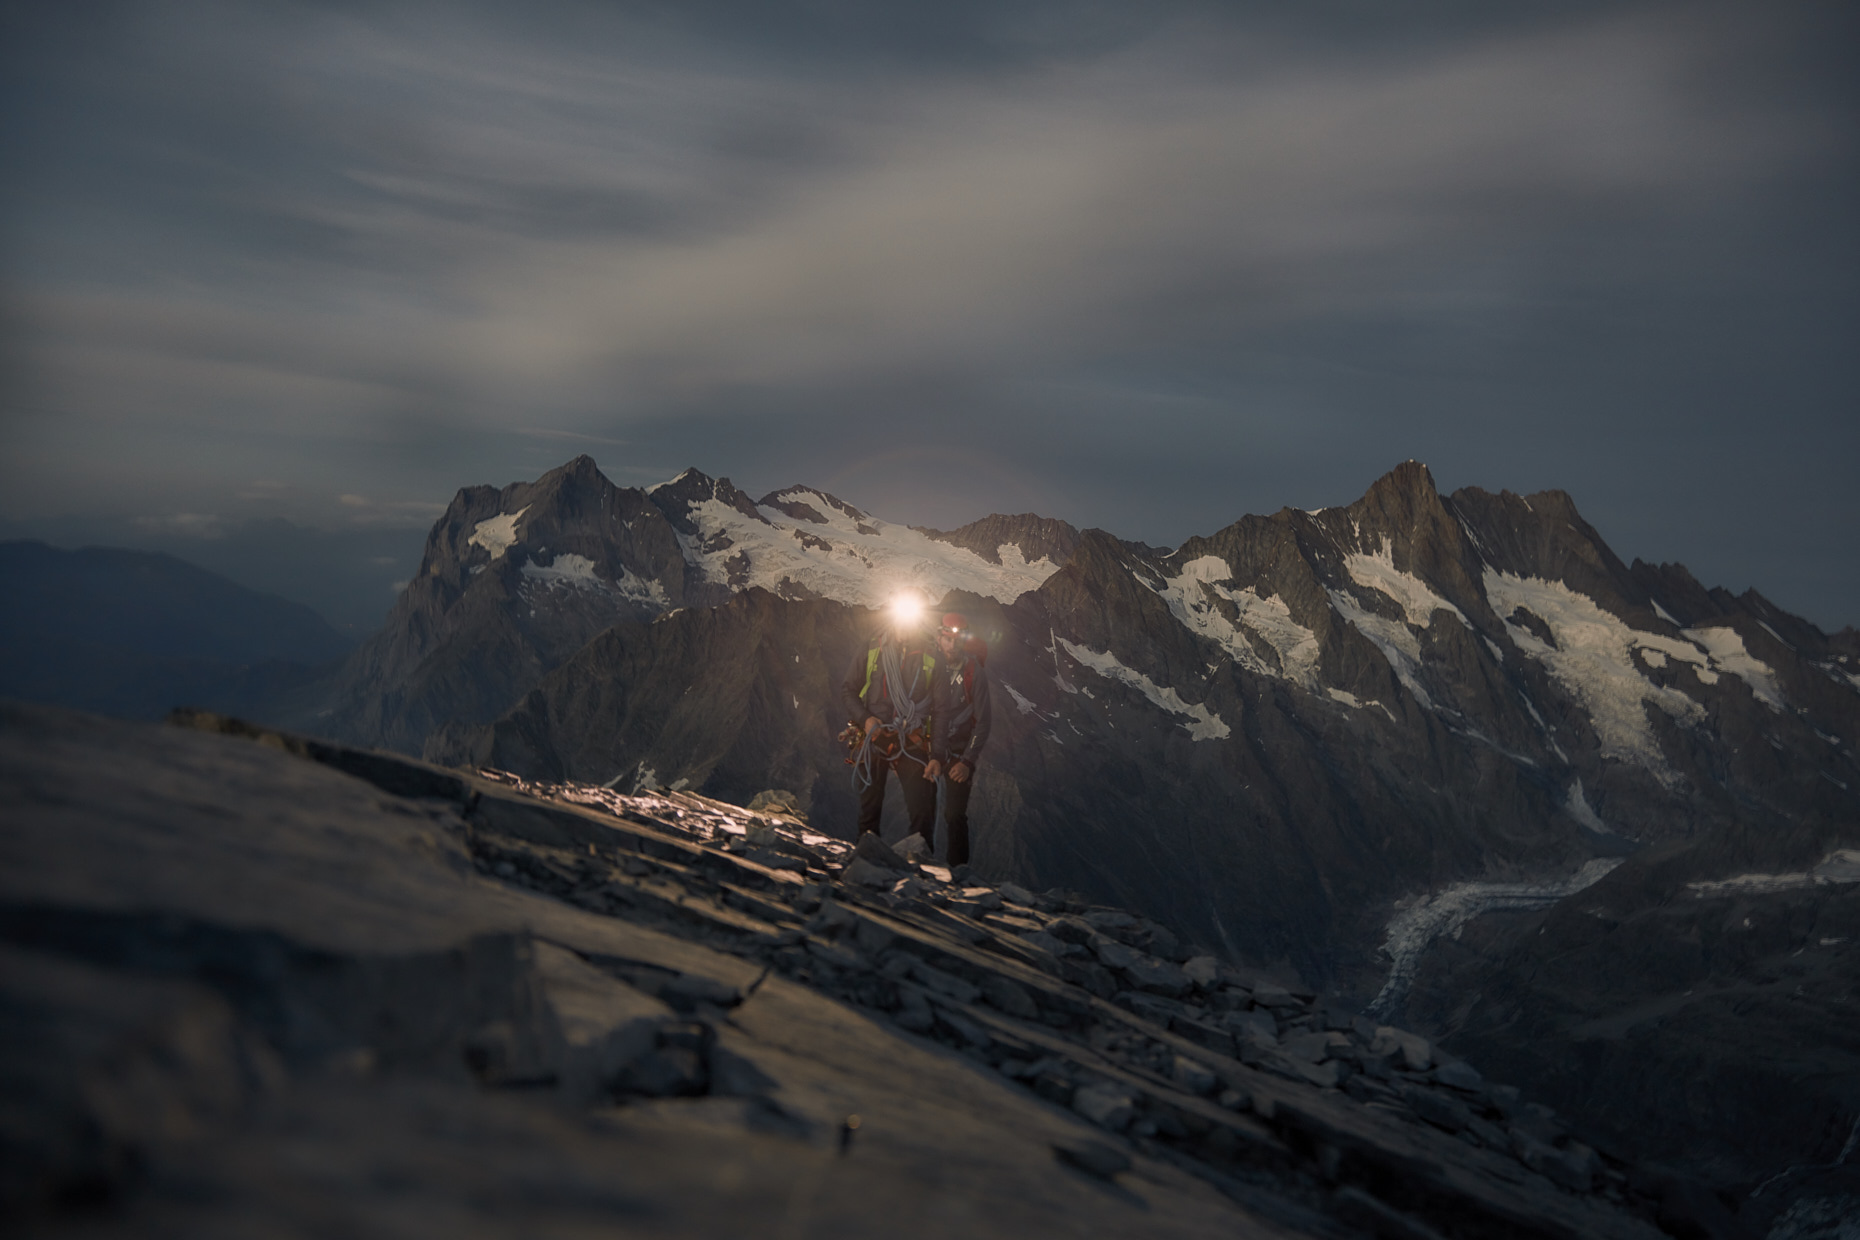 Dawn in the mountains | Stefan Kuerzi - Adventure Photography